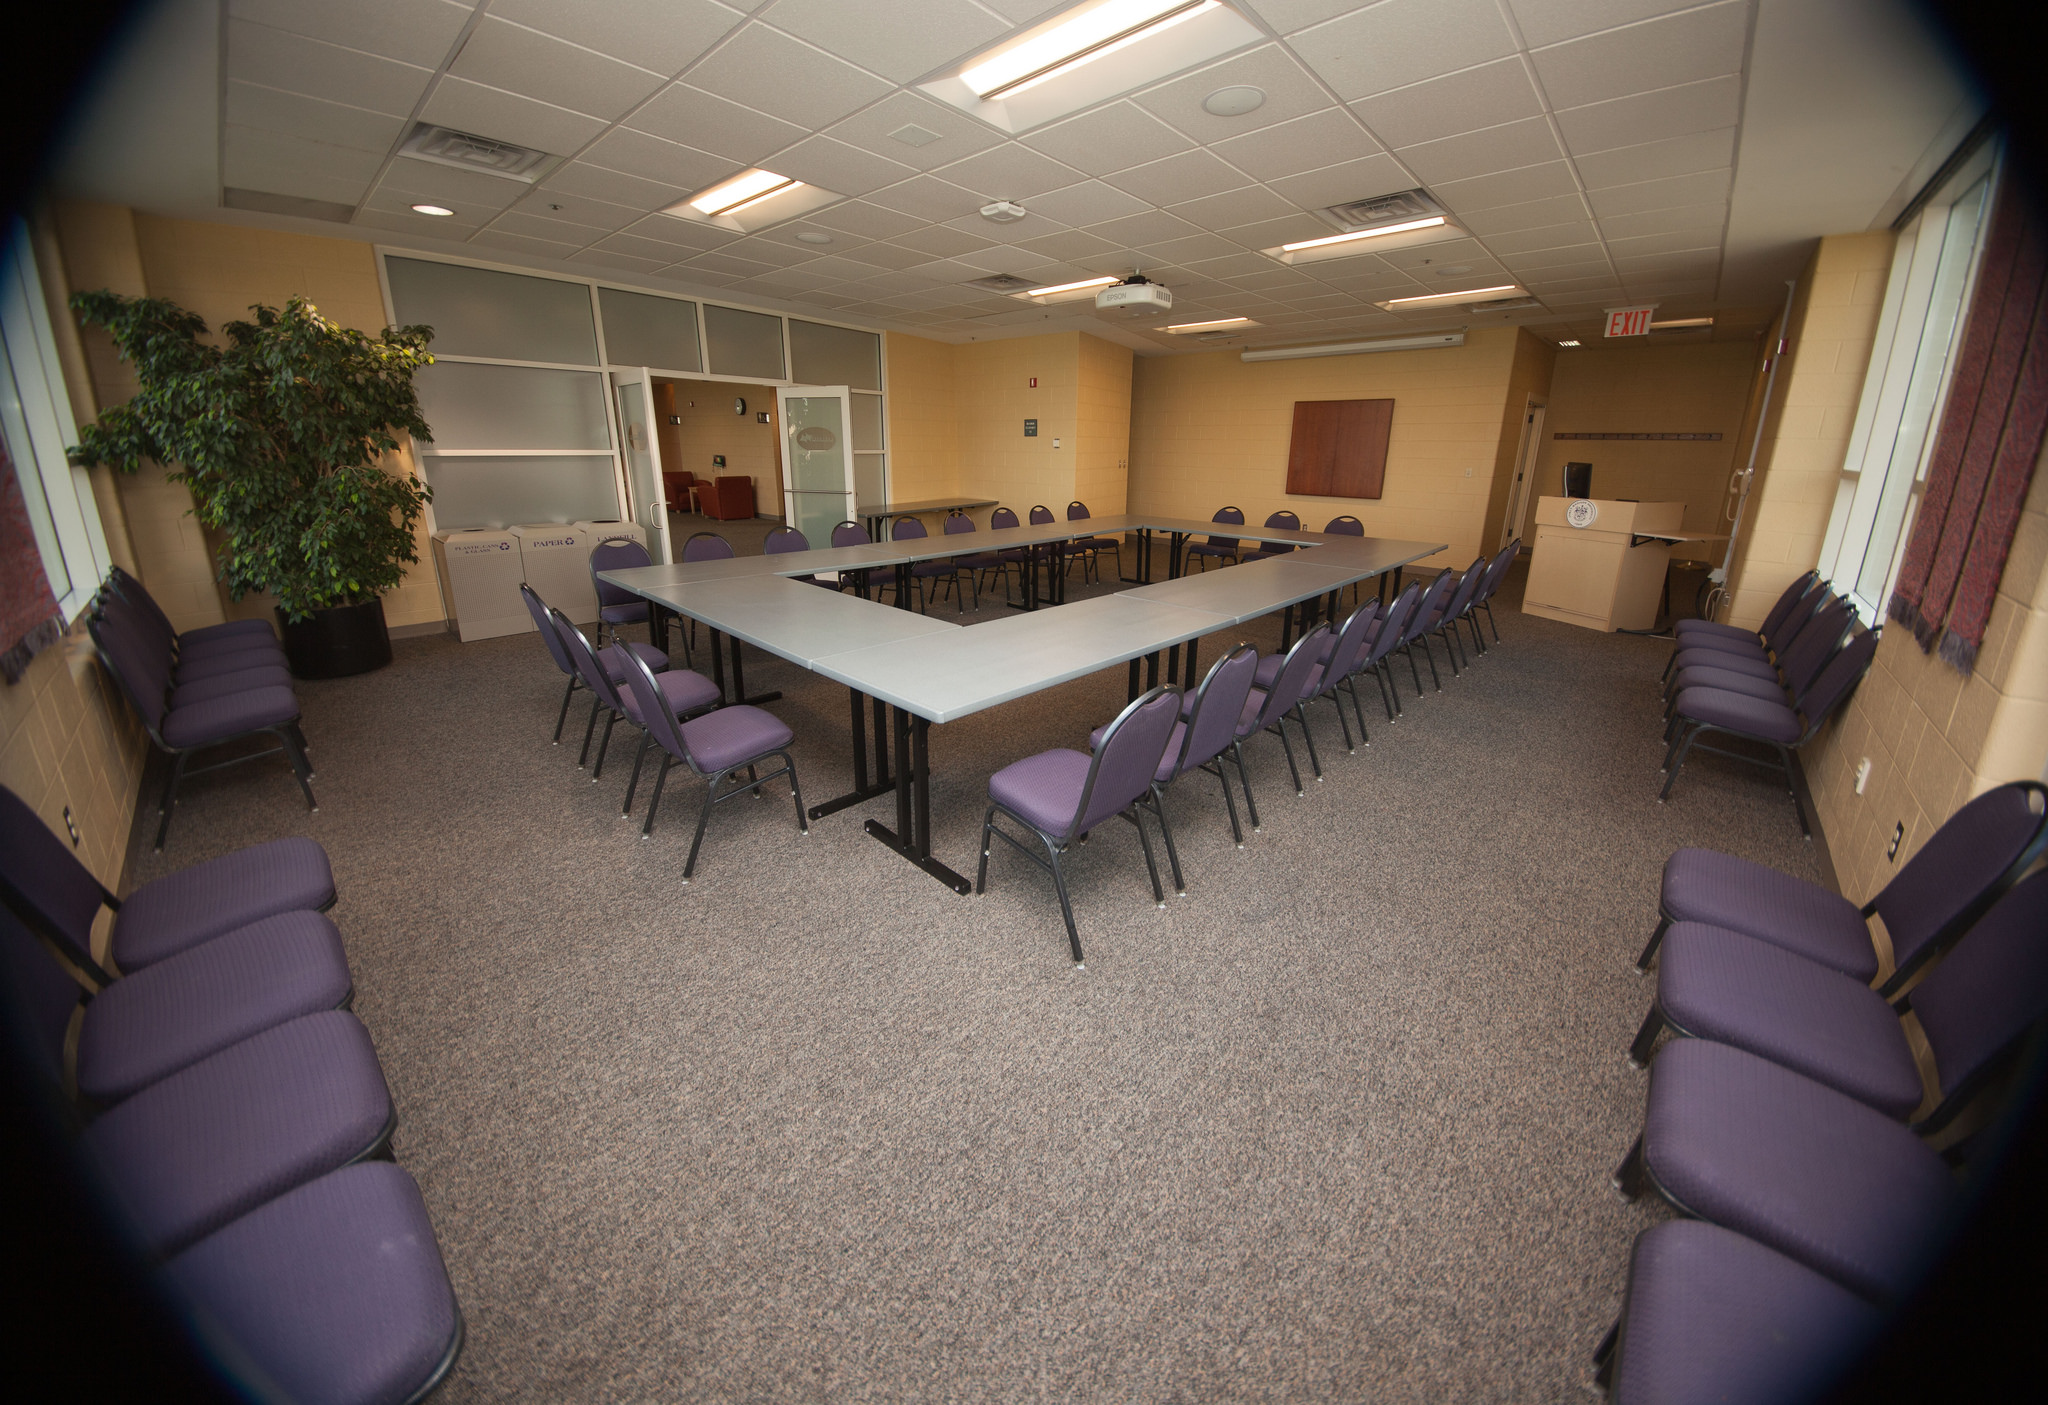 Image of a conference room with the tables forming a large rectangle.